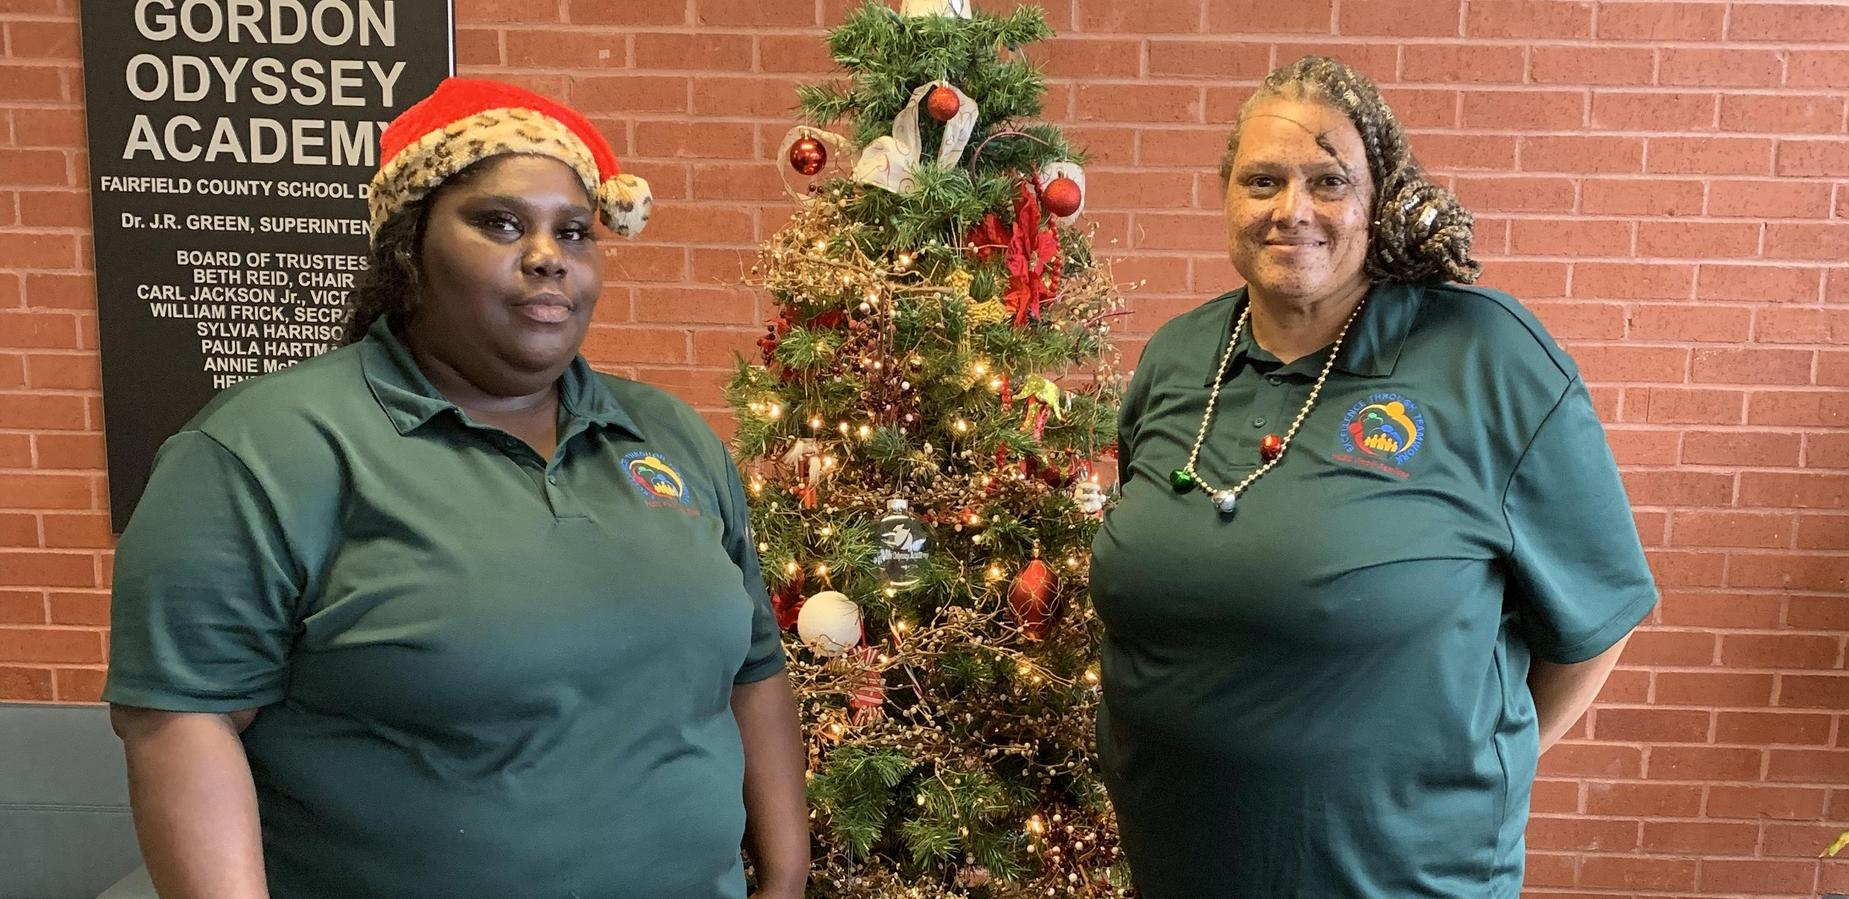 Food Service Staff posing in front of the Christmas tree